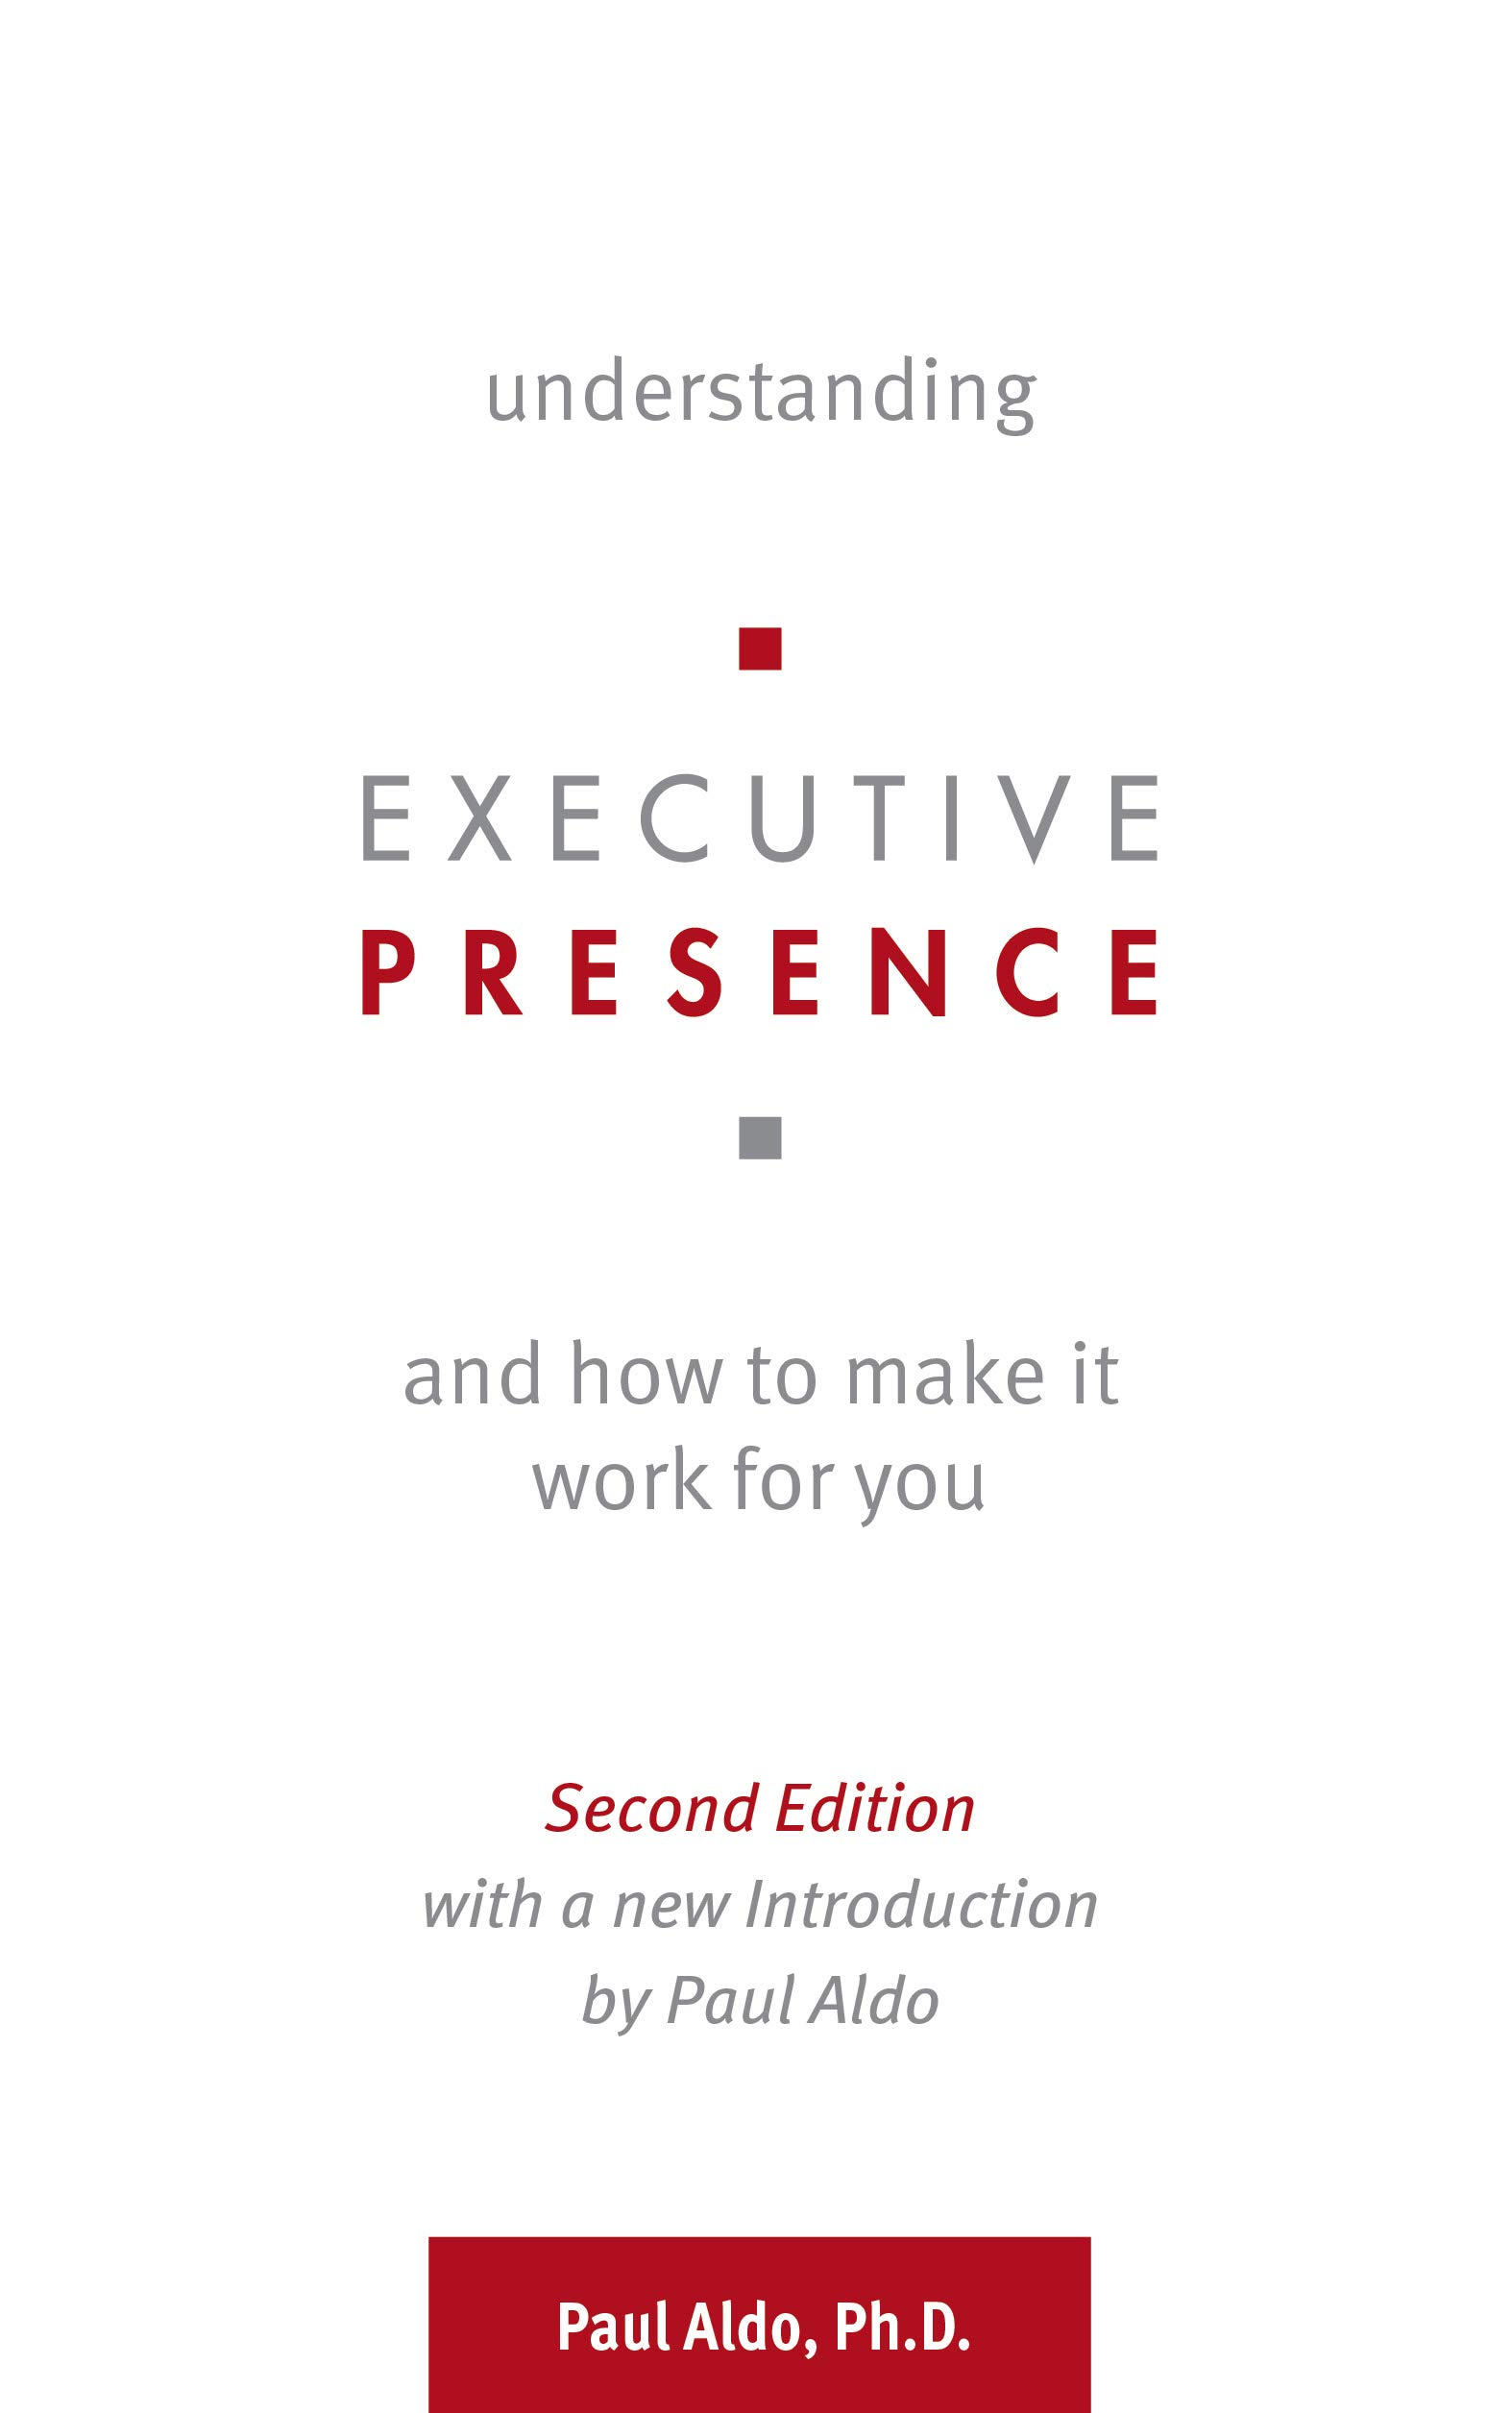 Understanding Executive Presence and How to Make It Work for You